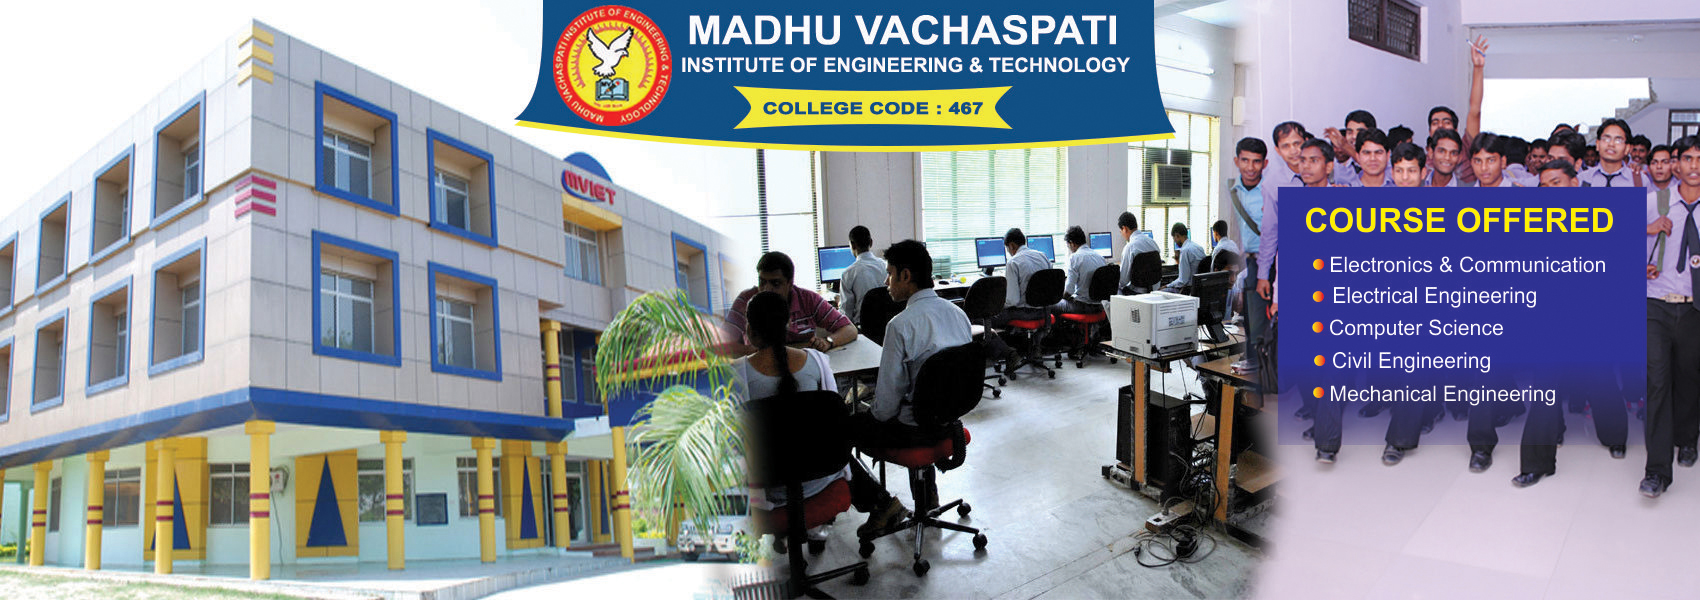 Madhu Vachaspati Institute of Engineering & Technology